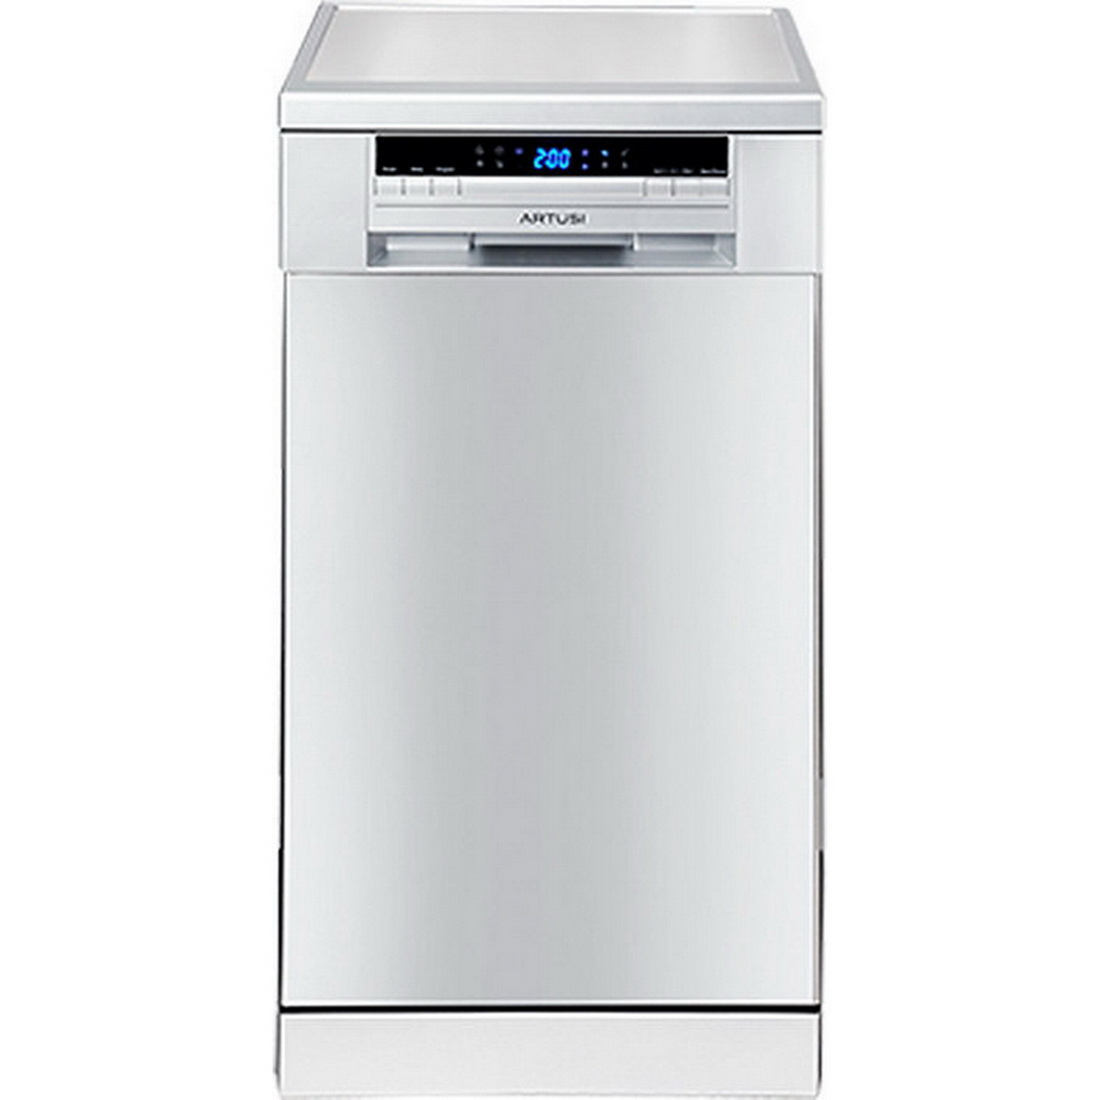 Freestanding Dishwasher 9 Place Settings 6 Wash Programs Stainless Steel Adw4500x Dishwashers Kitchen Appliances Kitchens Kitchens Laundry Shop Placemakers